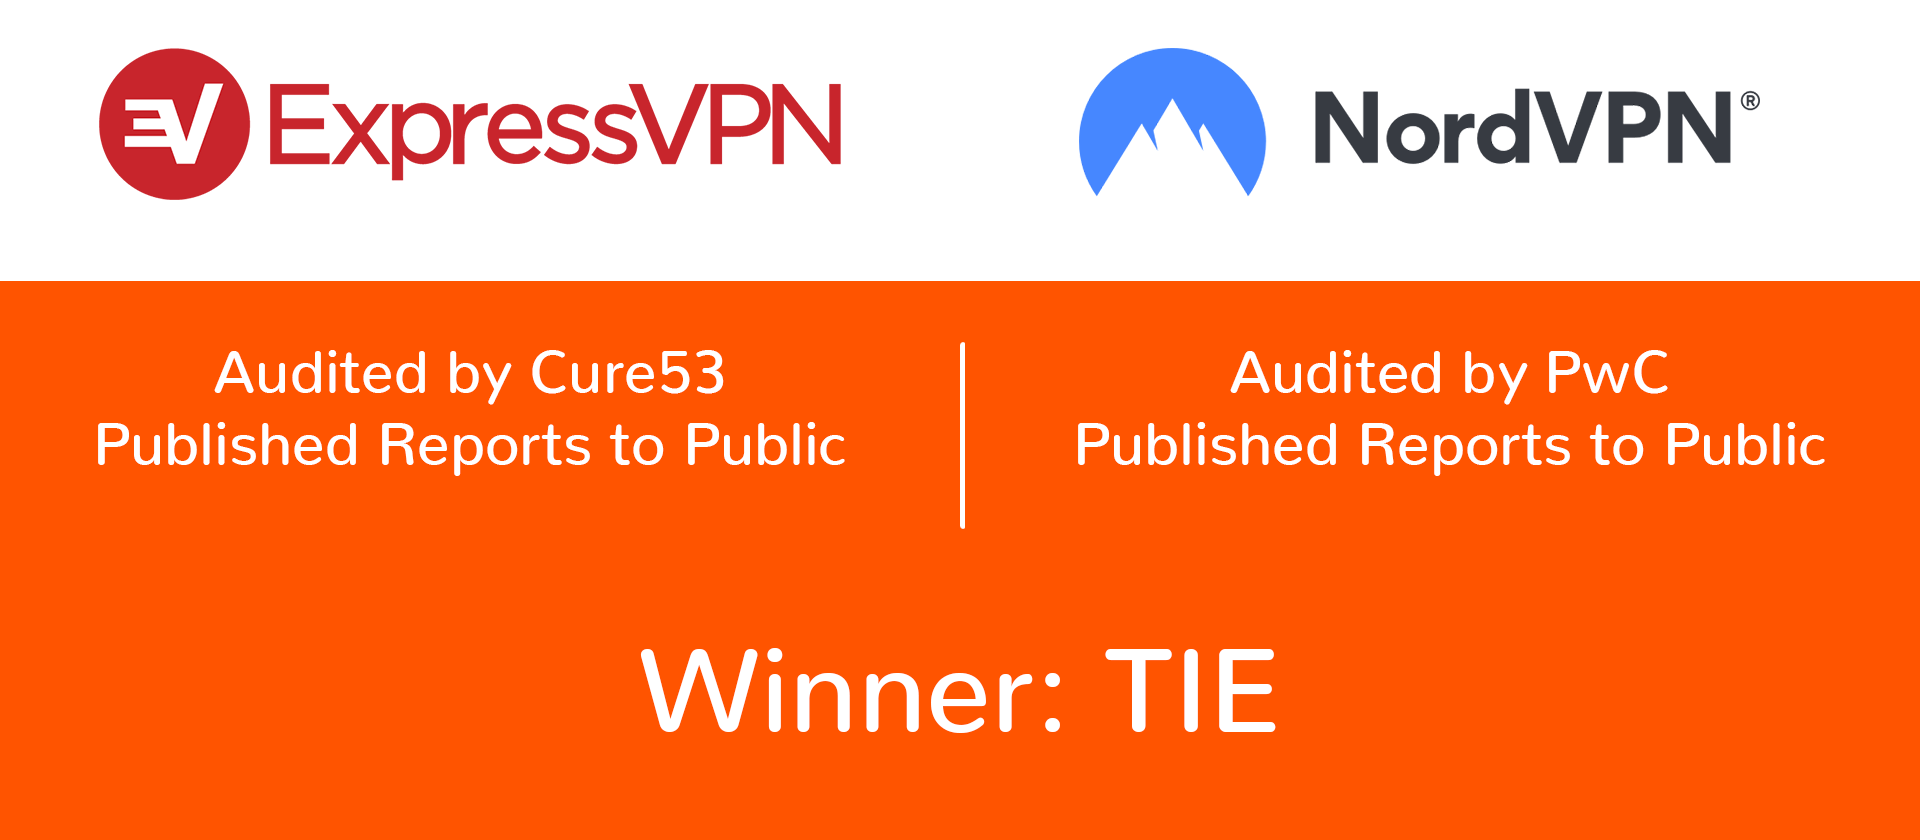 third party audits for nordvpn and expressvpn